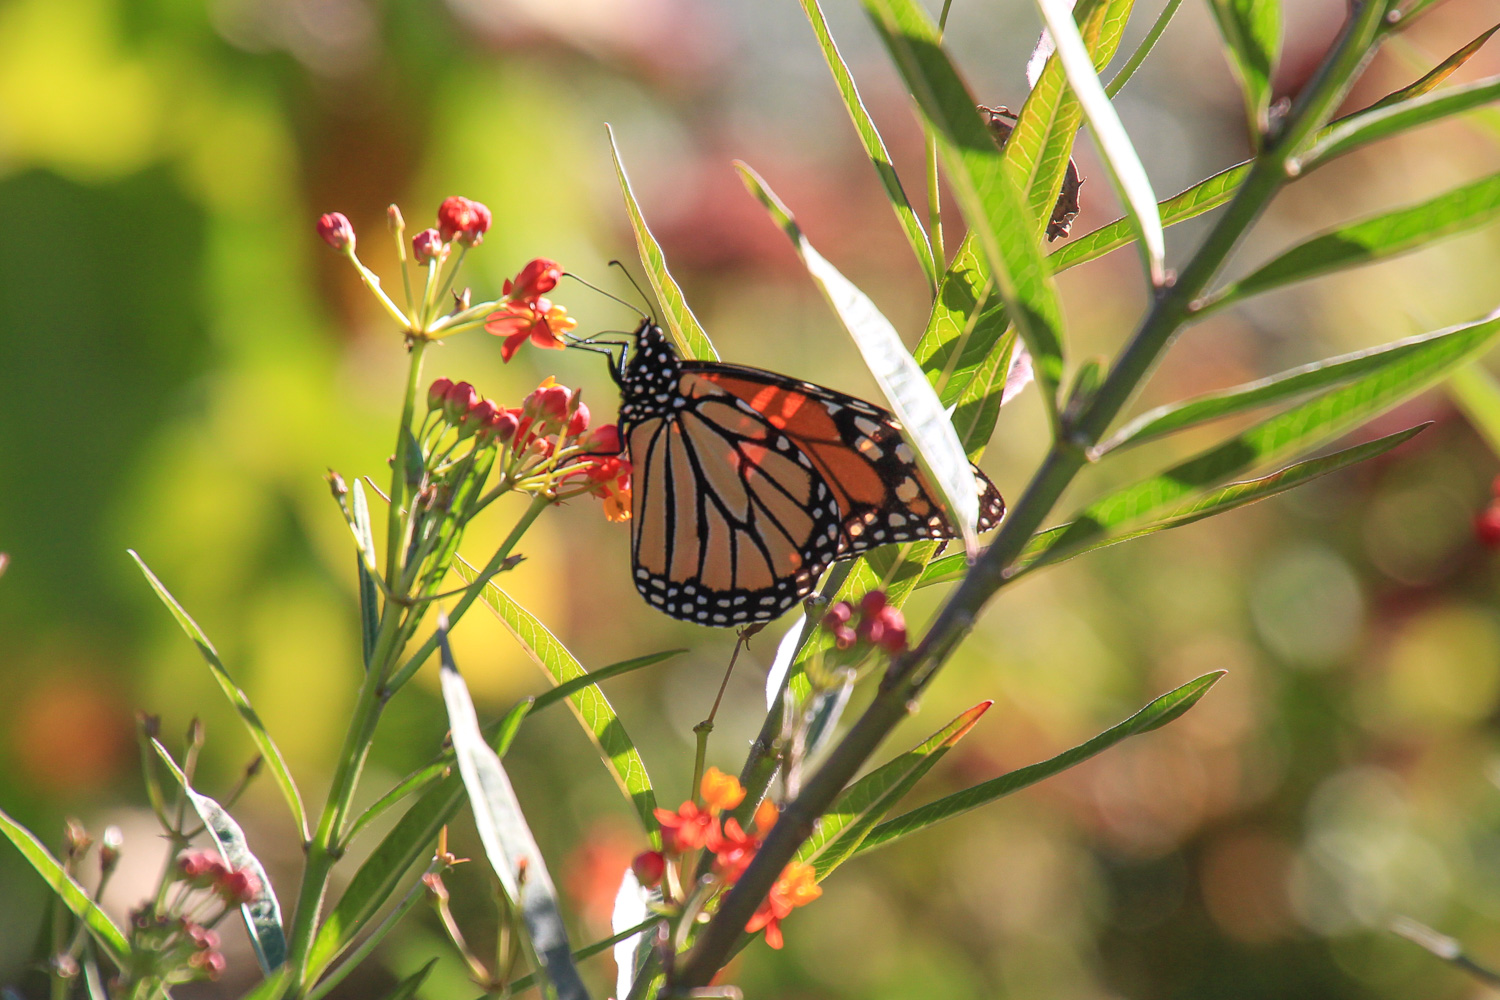 beginner photography tips – a butterfly on flowers